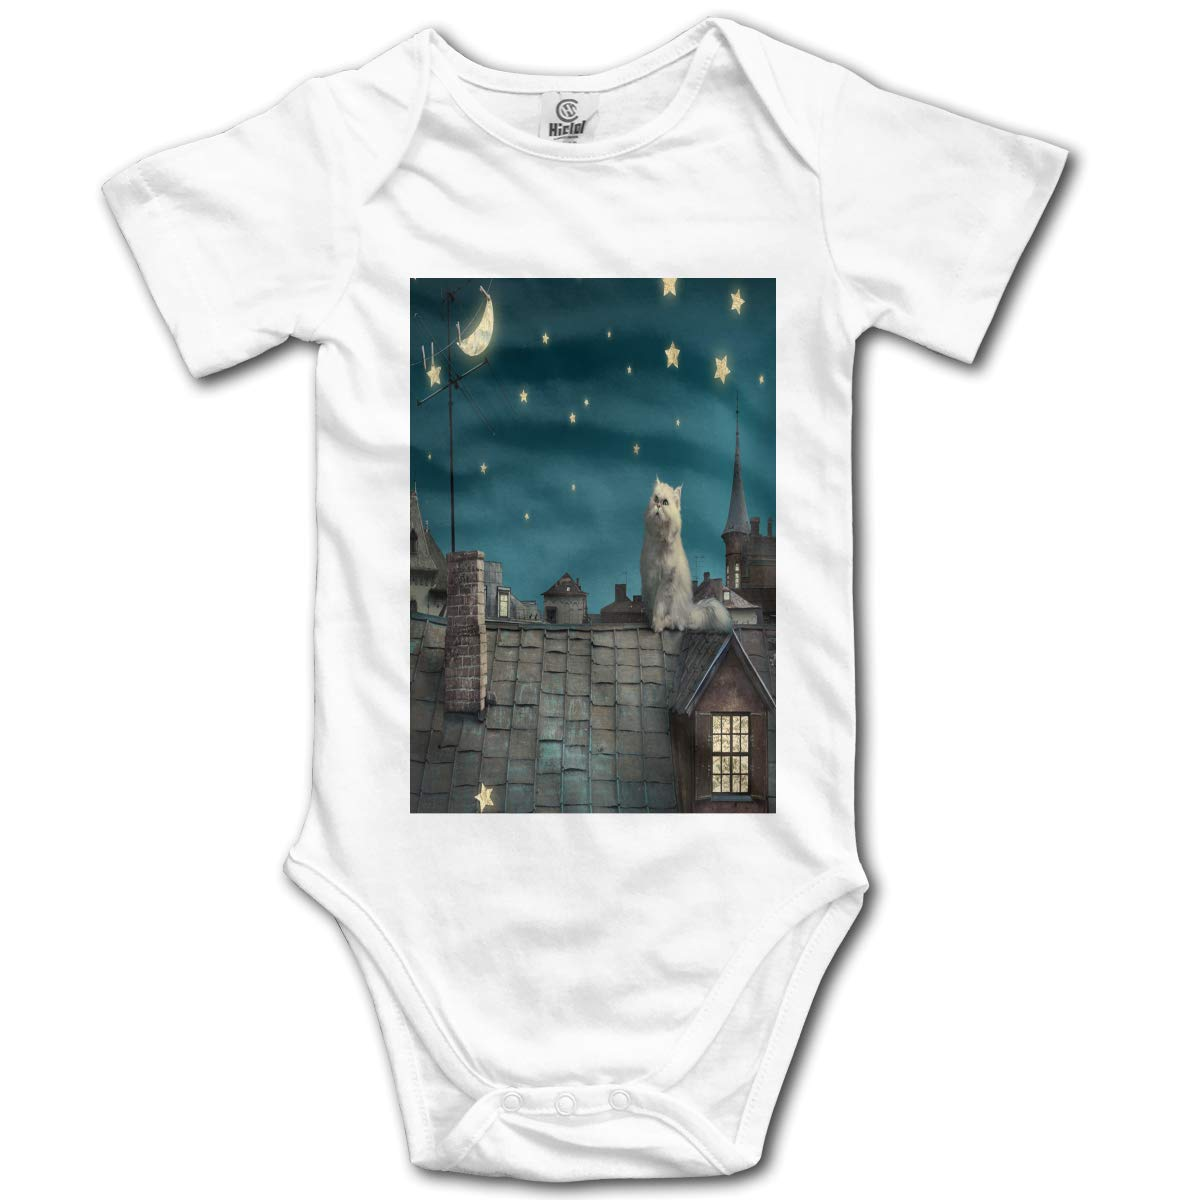 Cat on The Night Roof Boys /& Girls Black Short Sleeve Romper Bodysuit Outfits for 0-24 Months